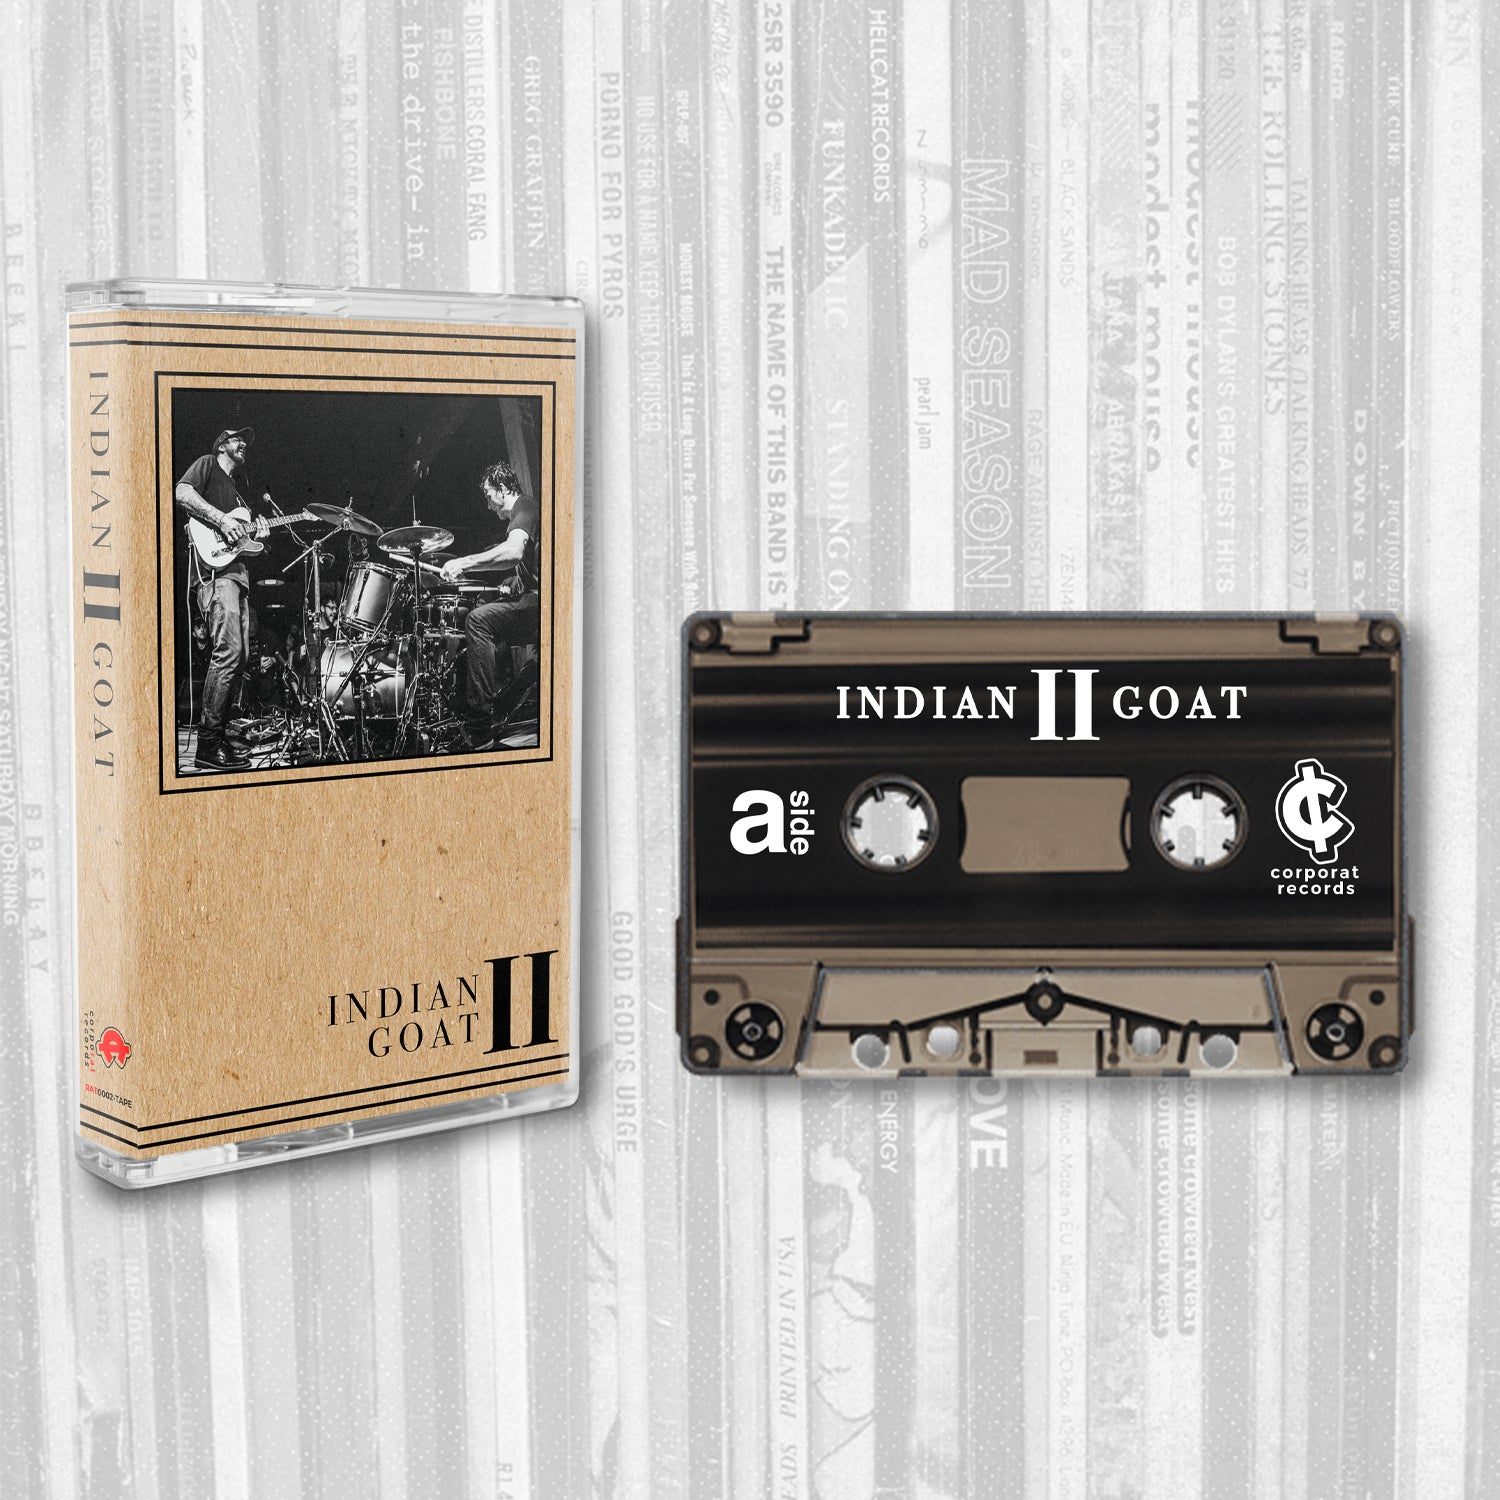 Indian Goat: 2 - Cassette Tape